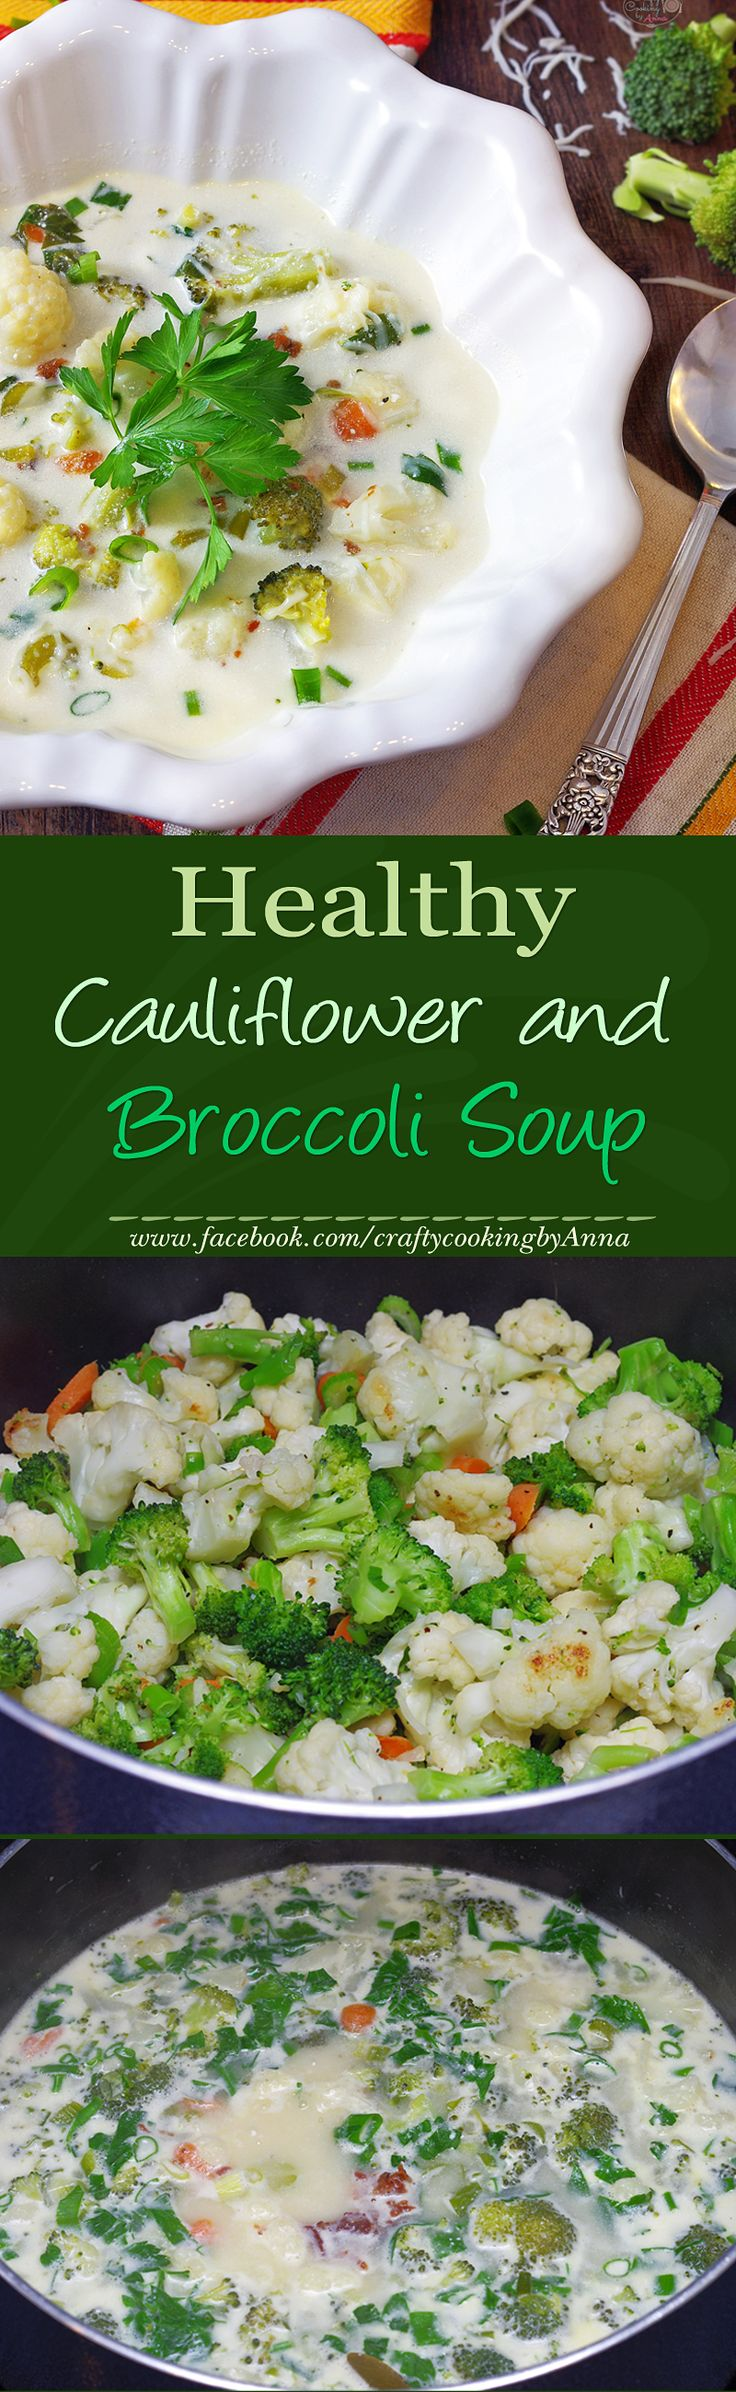 Healthy Cauliflower and Broccoli Soup! #Low Carb #Low Cal #Delicious #Hearty